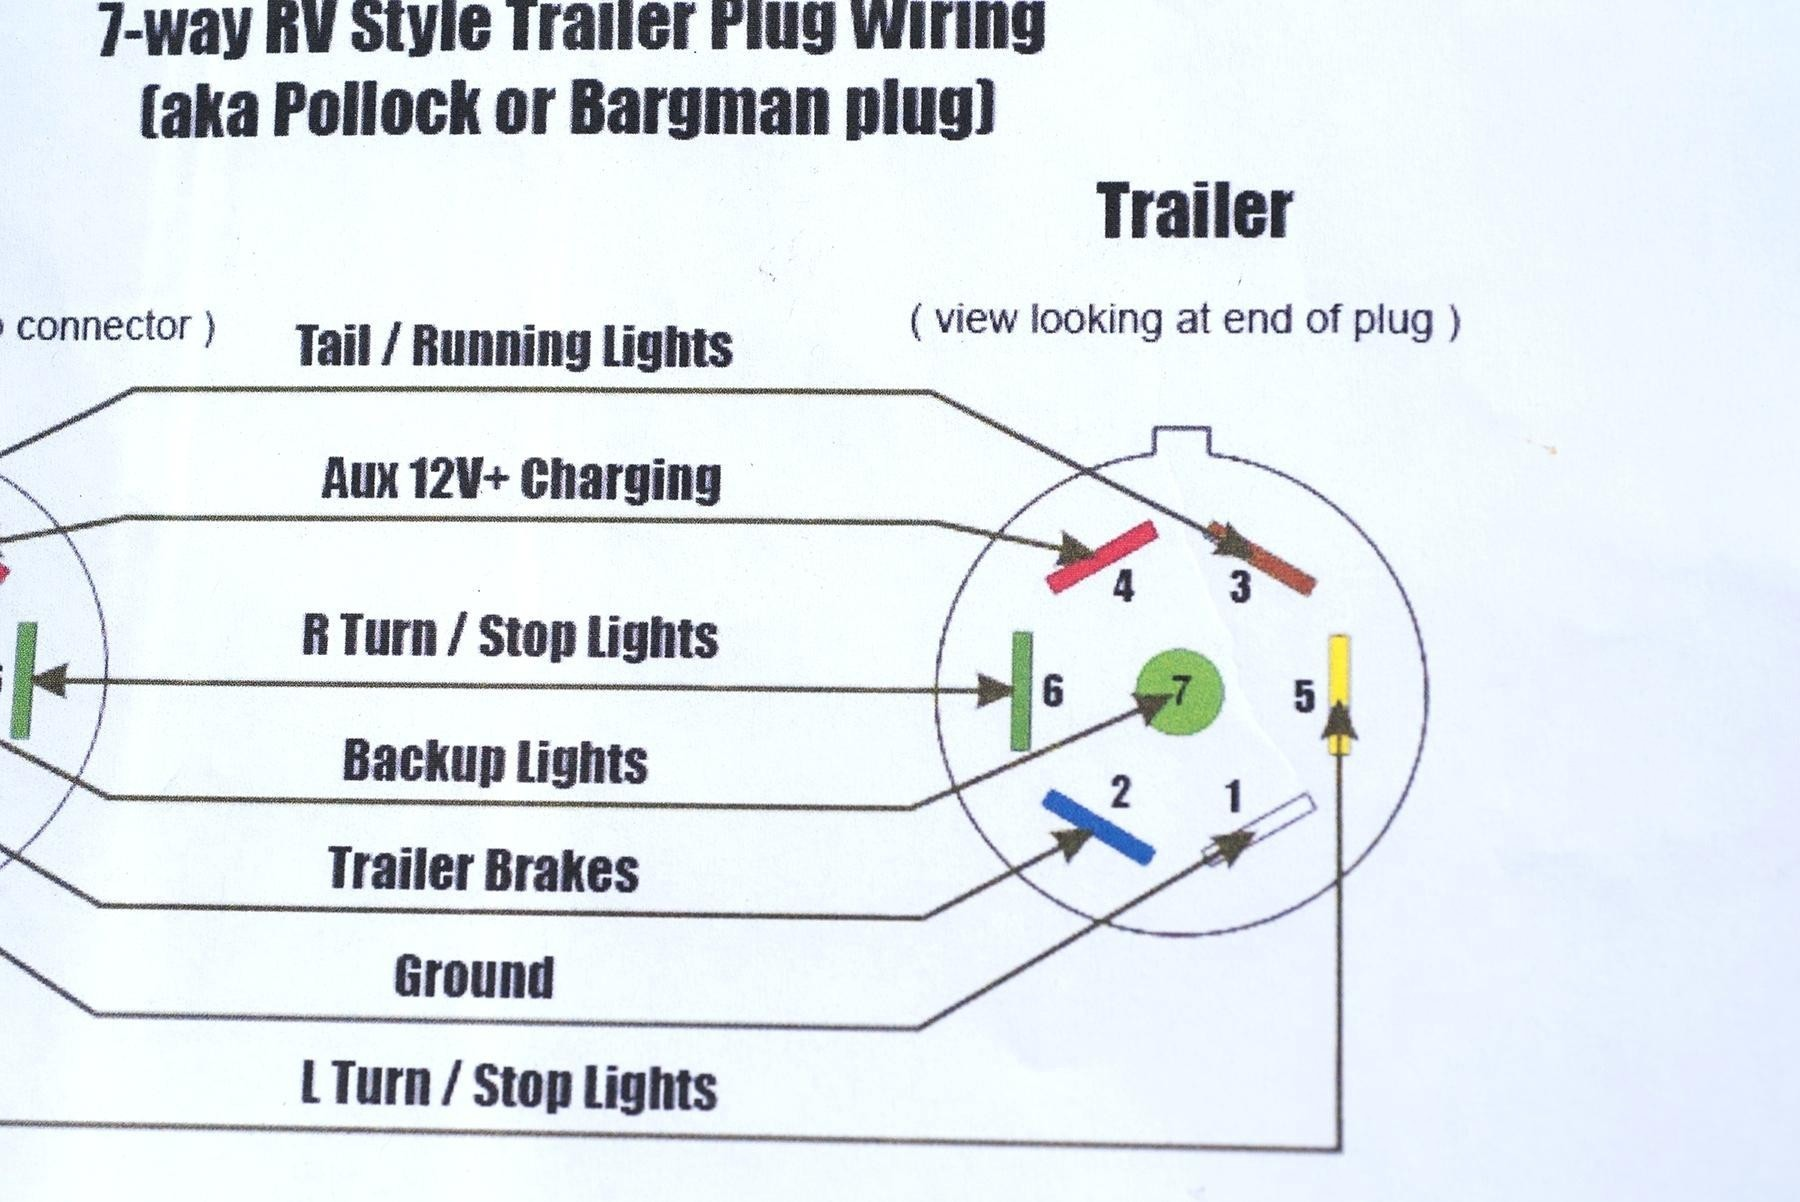 Trailer Light Wiring Diagram 7 Way 6 Round Adapter Plug Wire Diagram Wiring Diagram toolbox Of Trailer Light Wiring Diagram 7 Way Featherlite Trailers Wiring Diagrams Wiring Diagram Paper